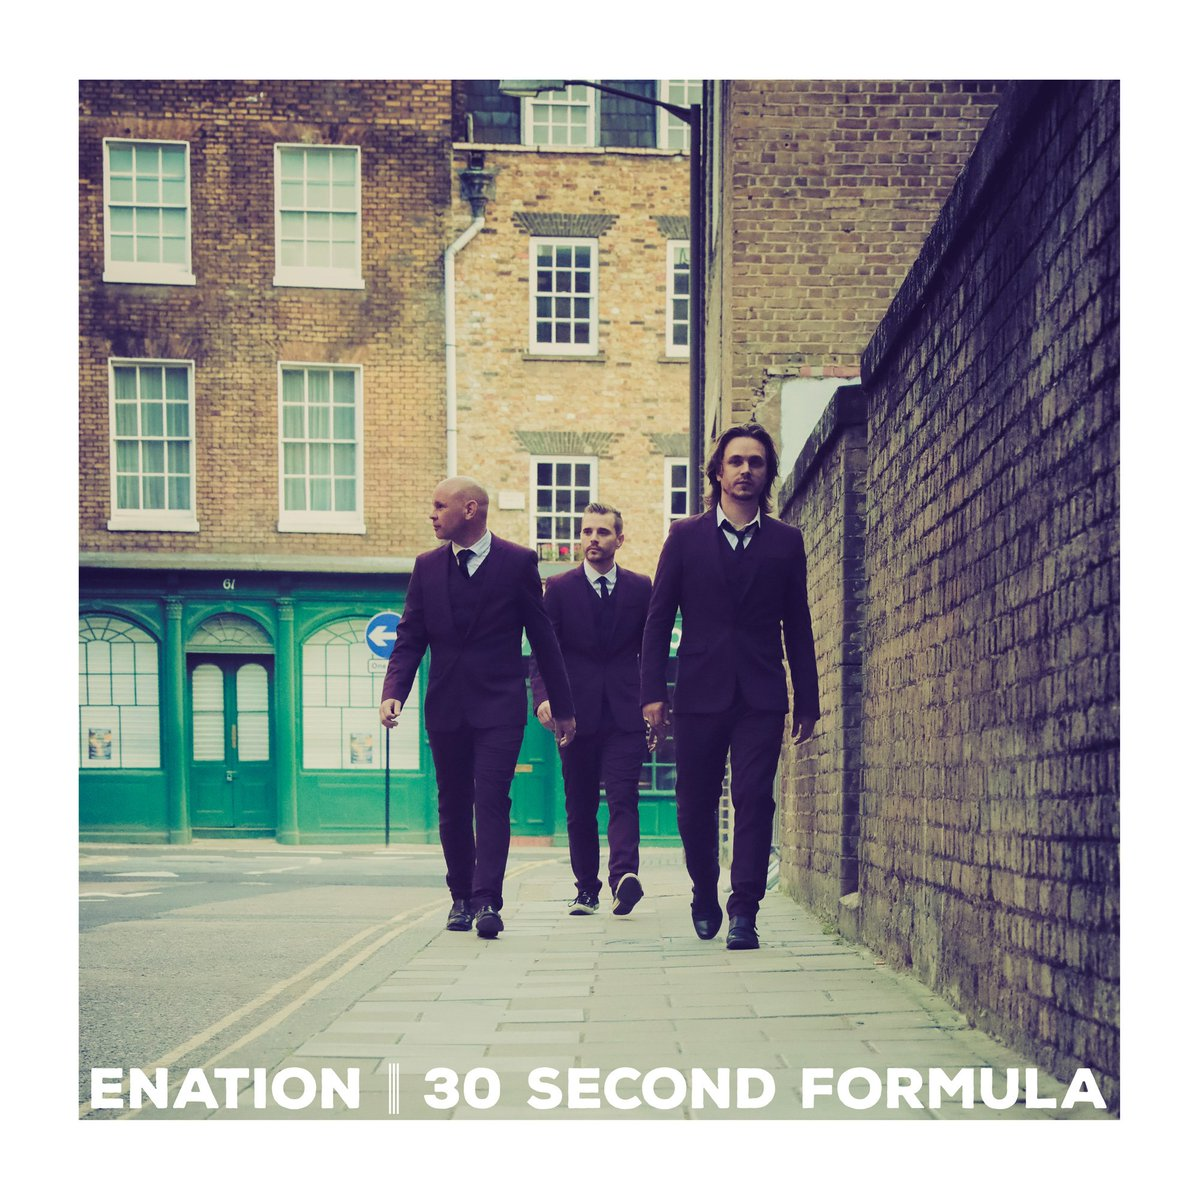 test Twitter Media - My new @Enation single, 30 Second Formula, is being released this Friday! Pre-save it now on @Spotify so you can have it available right when it's released! https://t.co/wShgDTBkxv   . 📸 @ChristieGoodwin #ENATION #NewMusic #Alternative #postpunk https://t.co/l9VxATwDeq